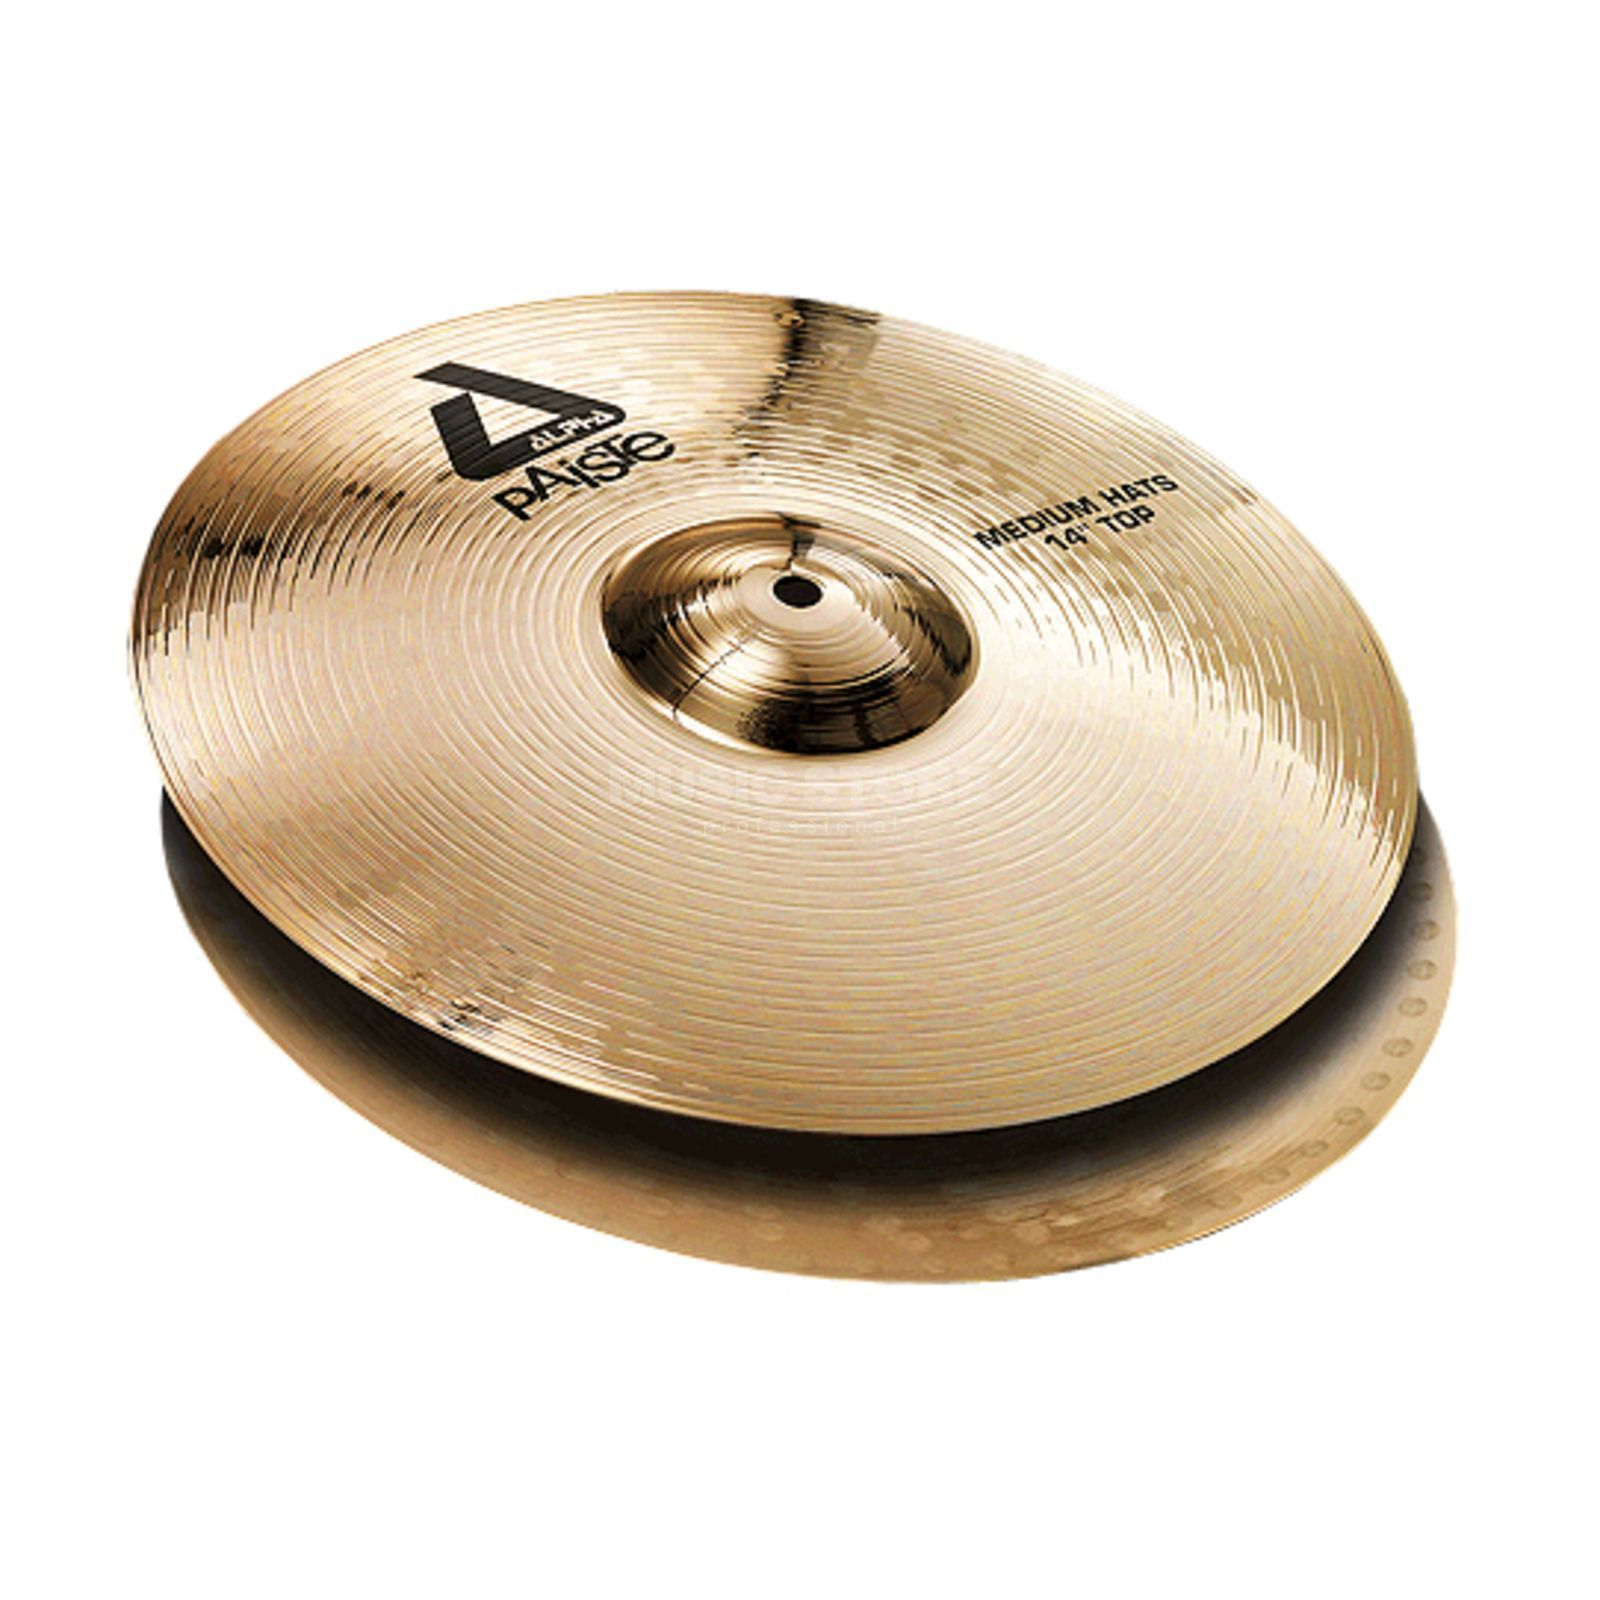 "Paiste Alpha Medium HiHat 14"", Brilliant Produktbild"